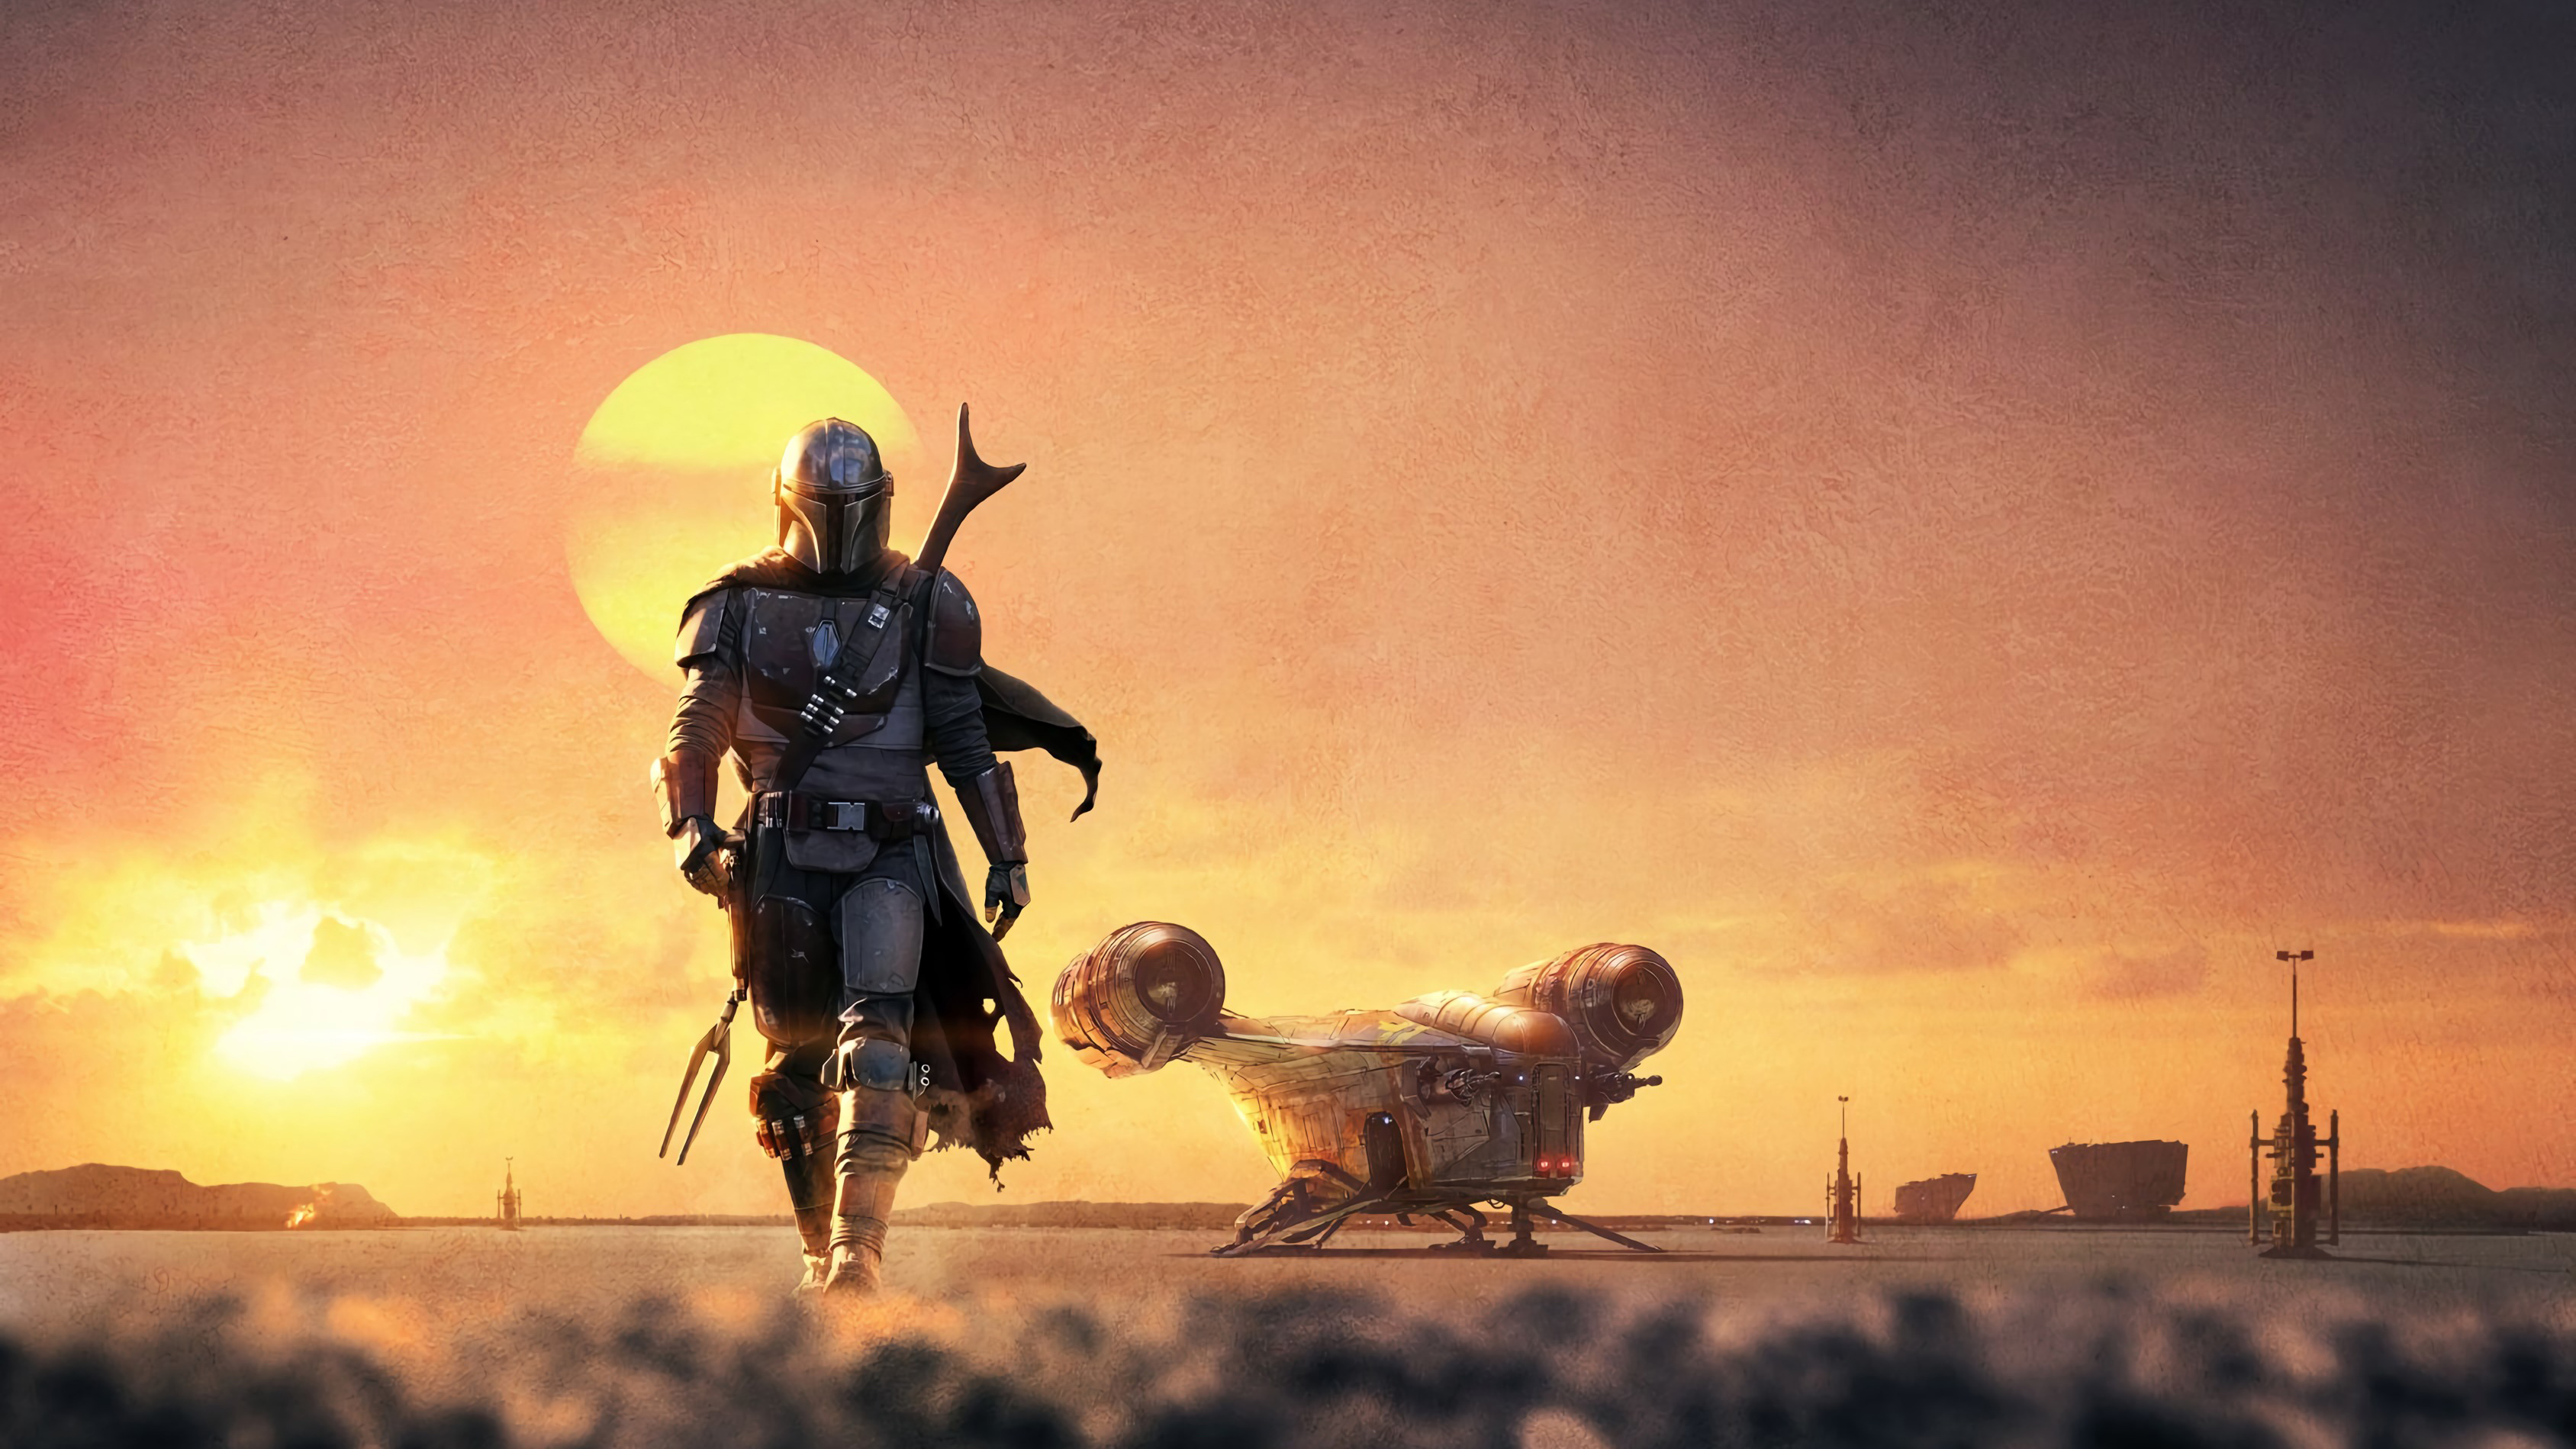 Star Wars The Mandalorian 2019 Hd Tv Shows 4k Wallpapers Images Backgrounds Photos And Pictures